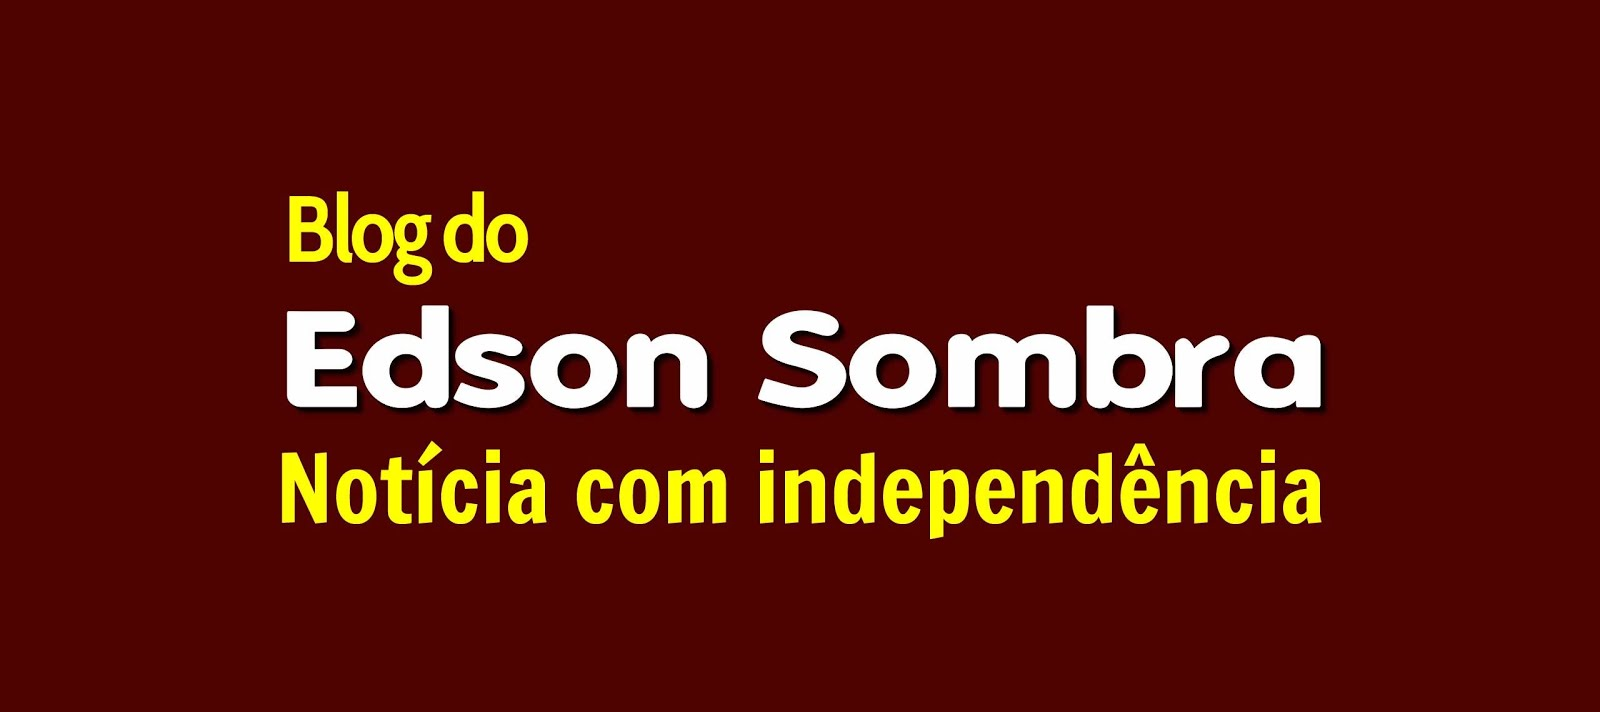 Blog do Edson Sombra